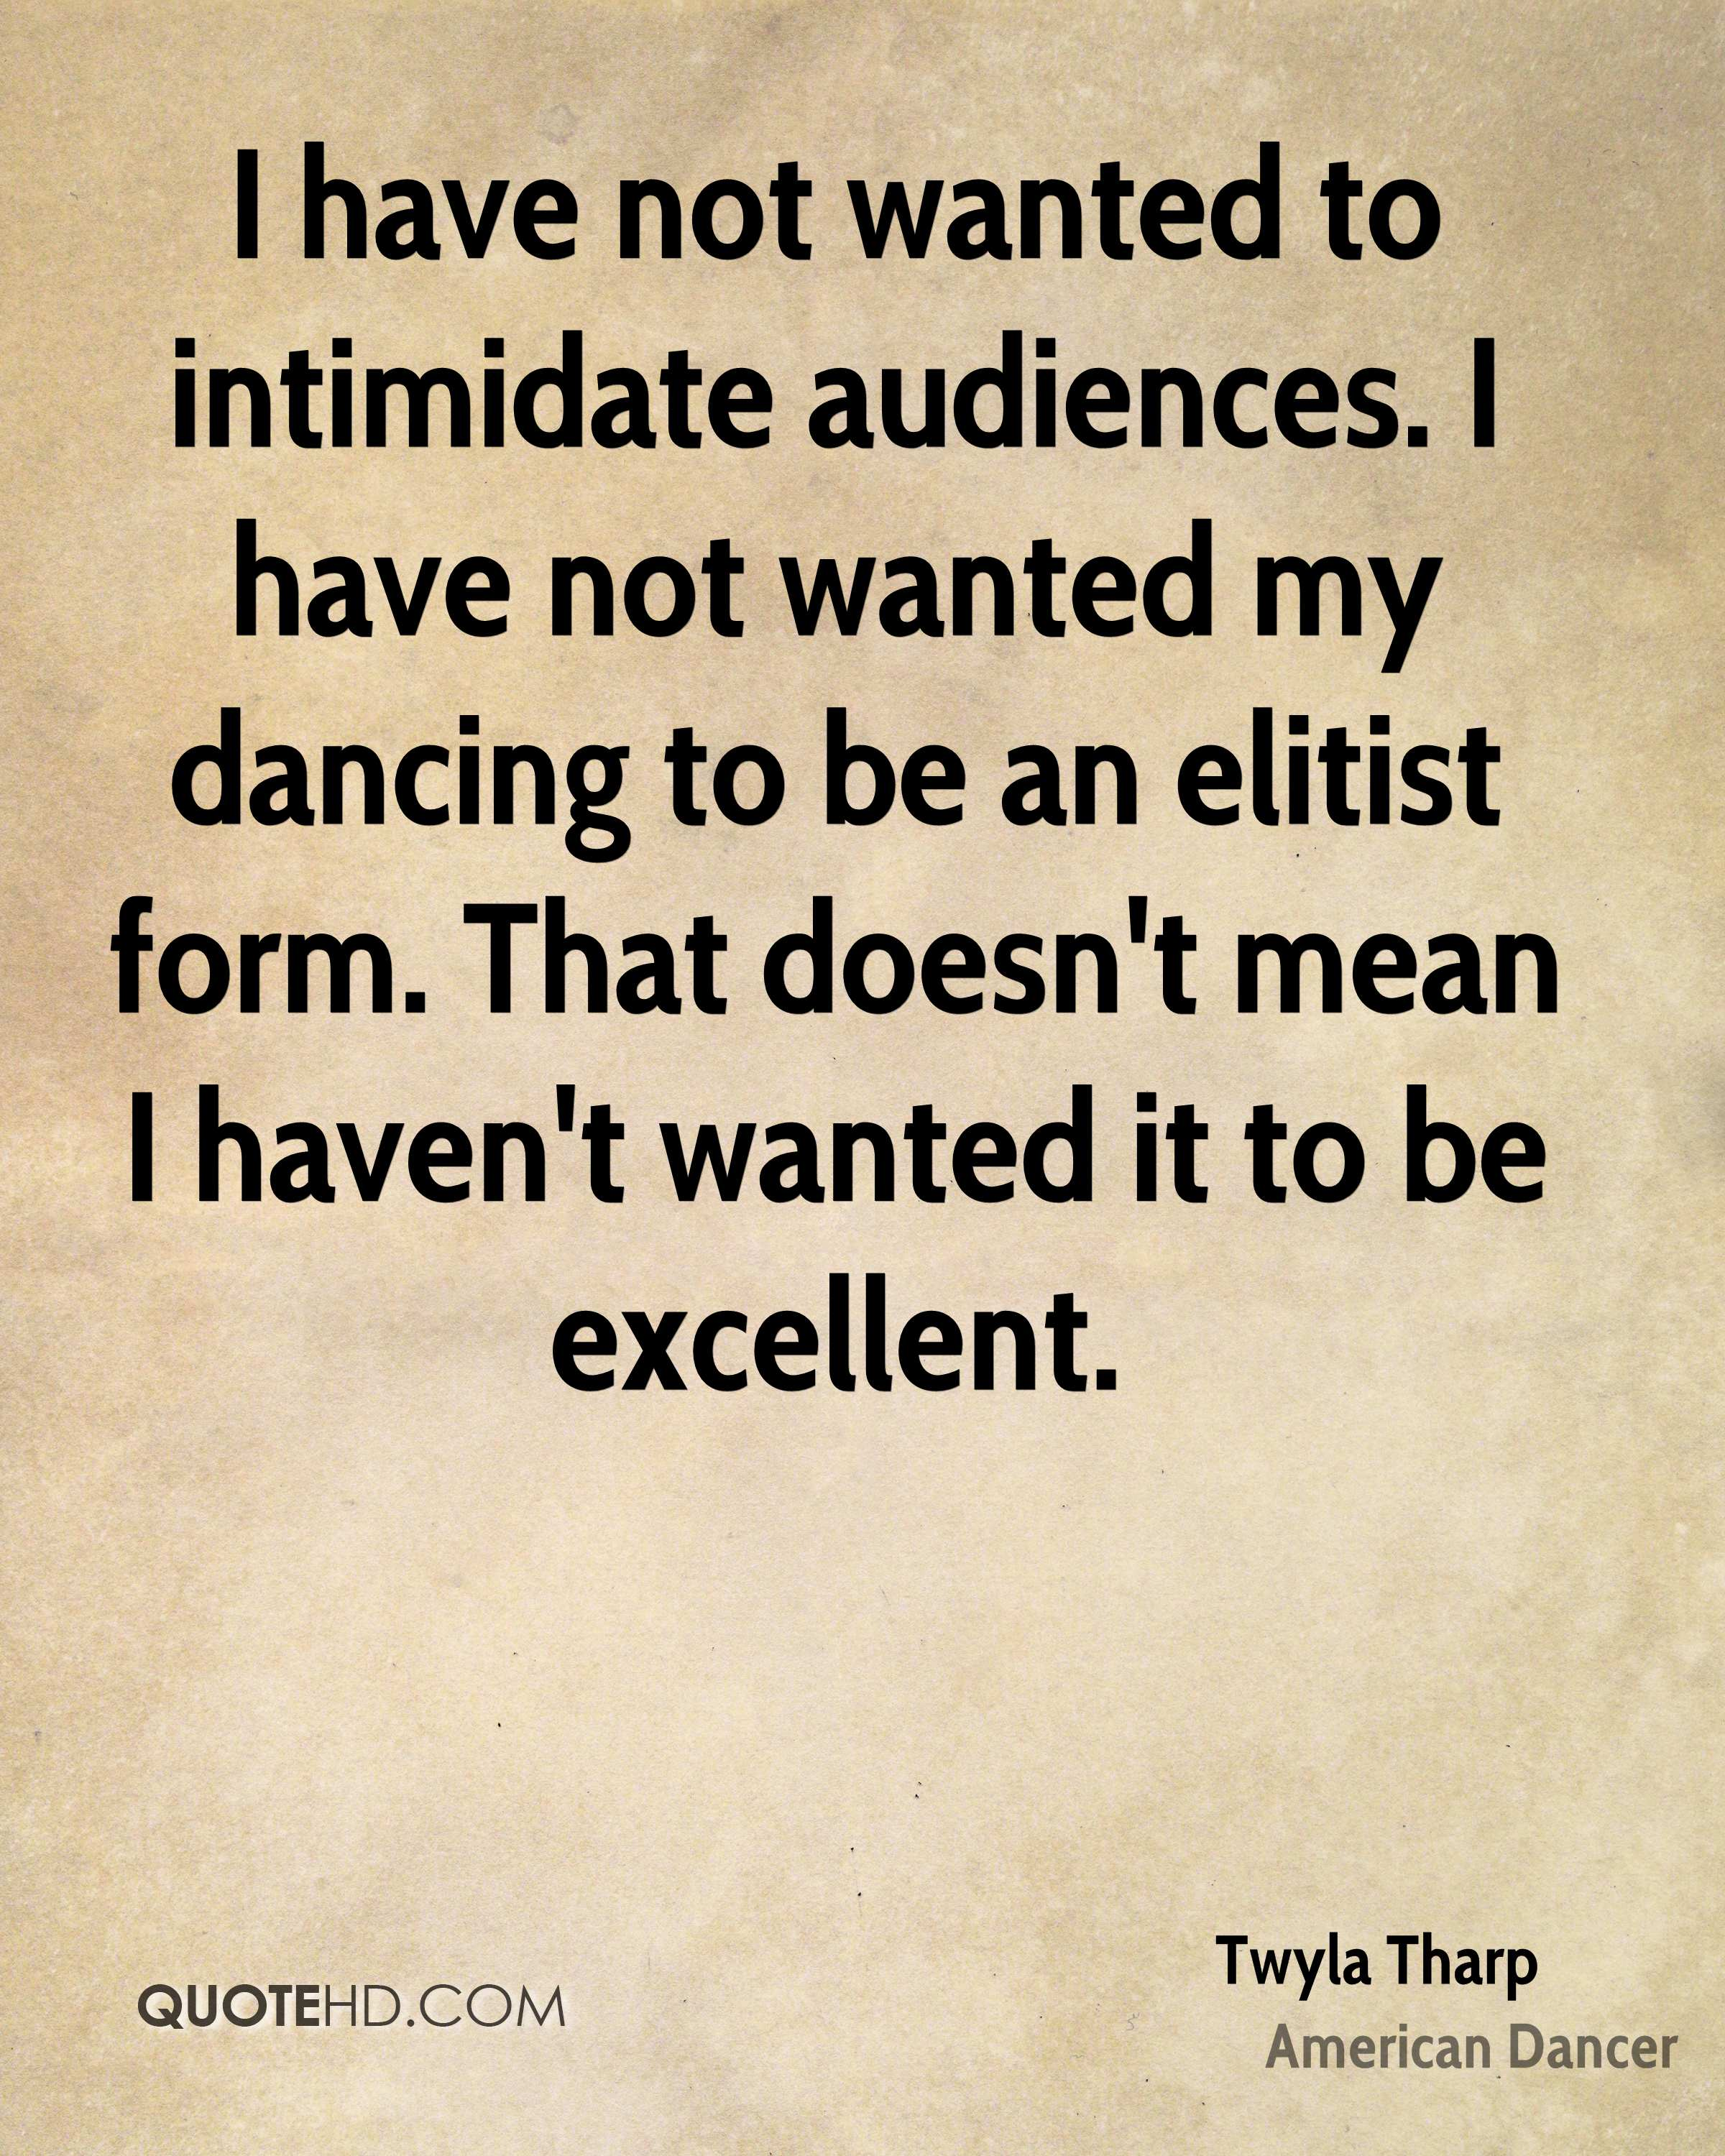 I have not wanted to intimidate audiences. I have not wanted my dancing to be an elitist form. That doesn't mean I haven't wanted it to be excellent.